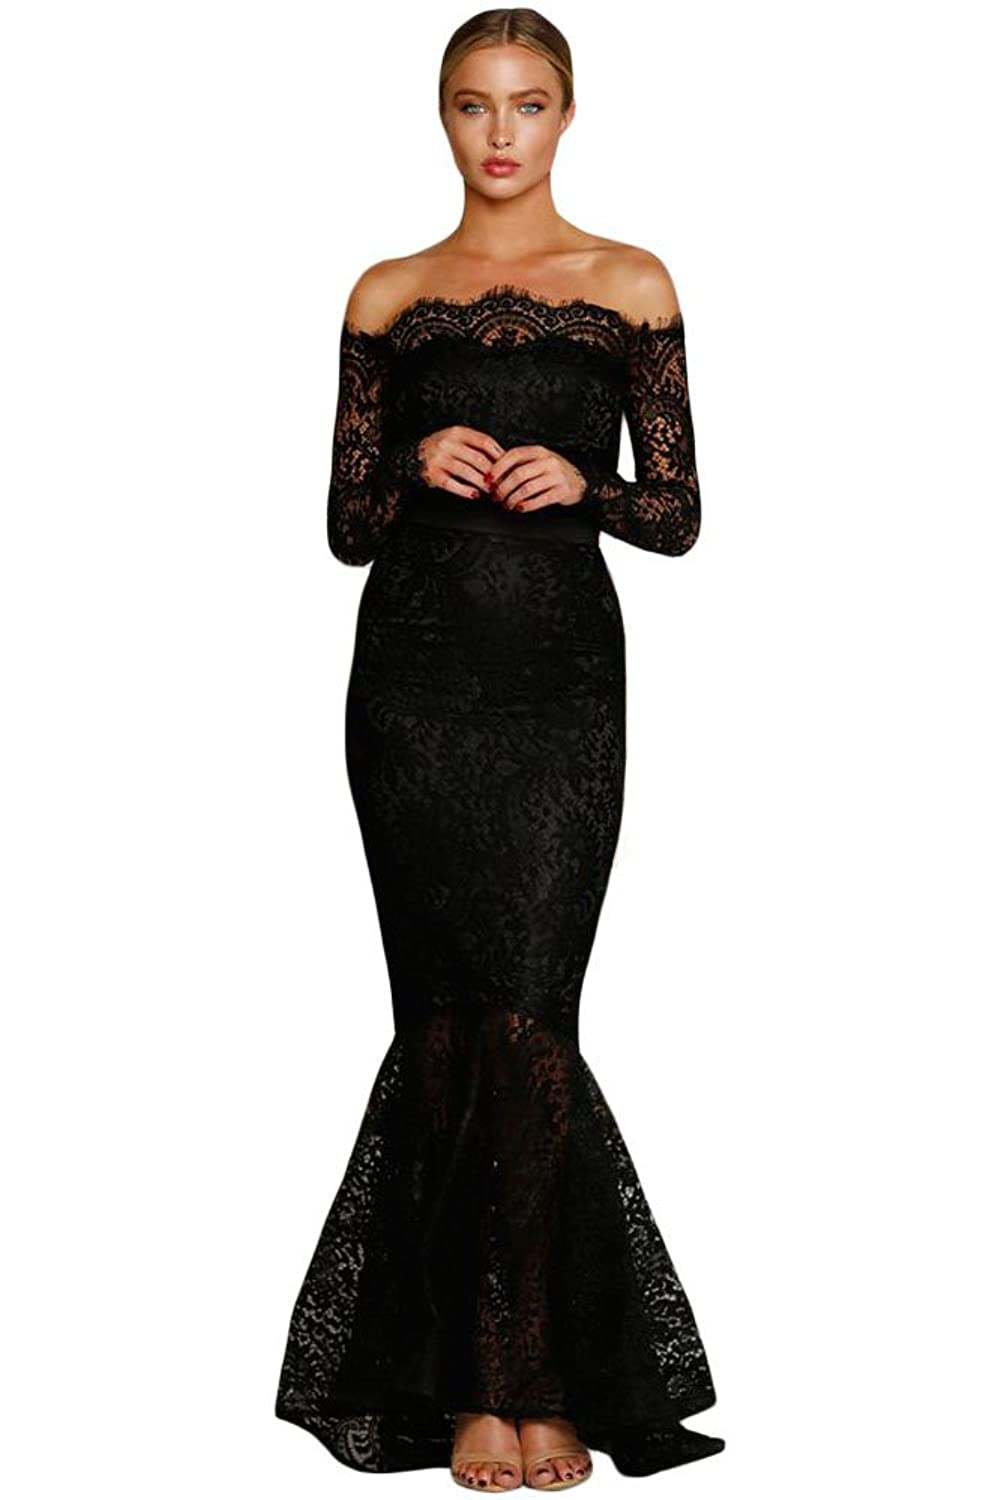 Ladies Eyelash Lace Off Shoulder Long Sleeve Mermaid Formal Autumn Party Dress